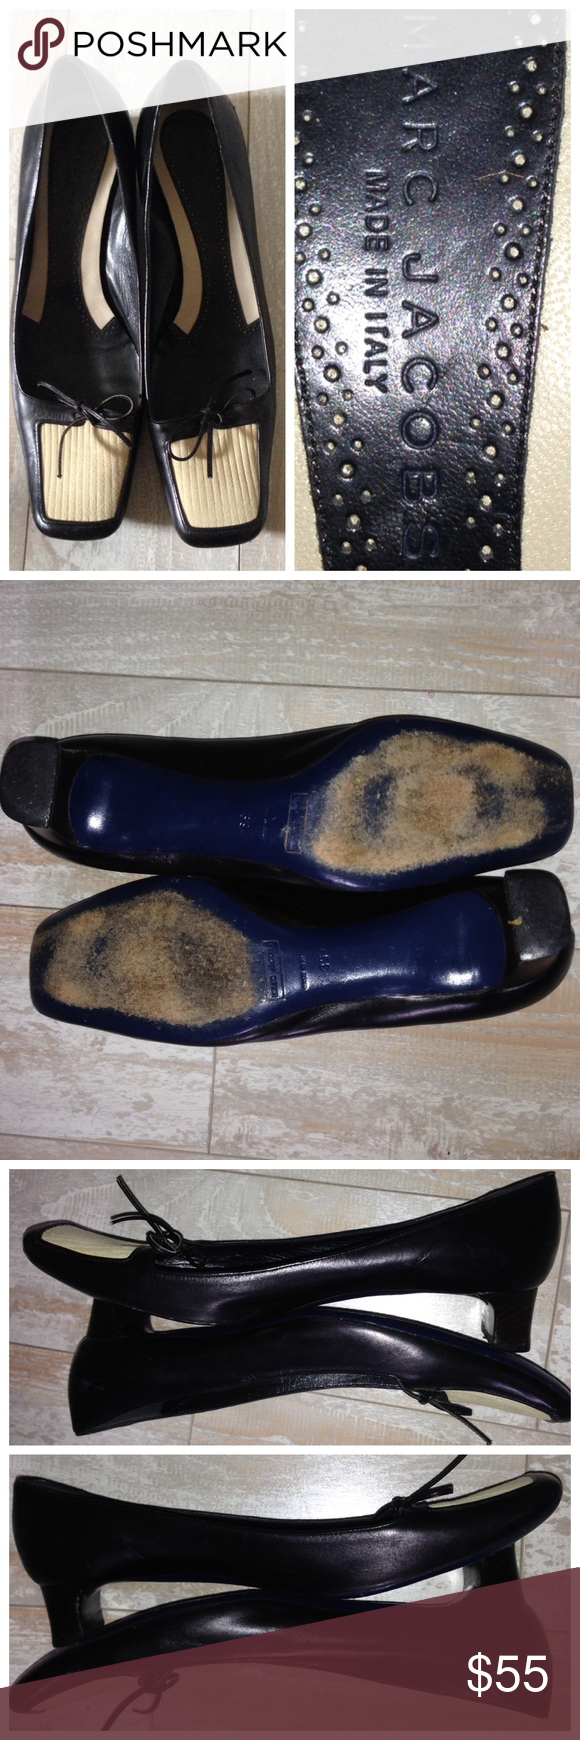 Marc Jacobs Suede  Leather Loafers Pumps Italy Marc Jacobs Multi-color Suede  Leather Loafers Pumps Italy  PreLoved No box  No dust bag  Square / boxed toed  Cream patch is suede  Plenty life left Marc Jacobs Shoes Heels